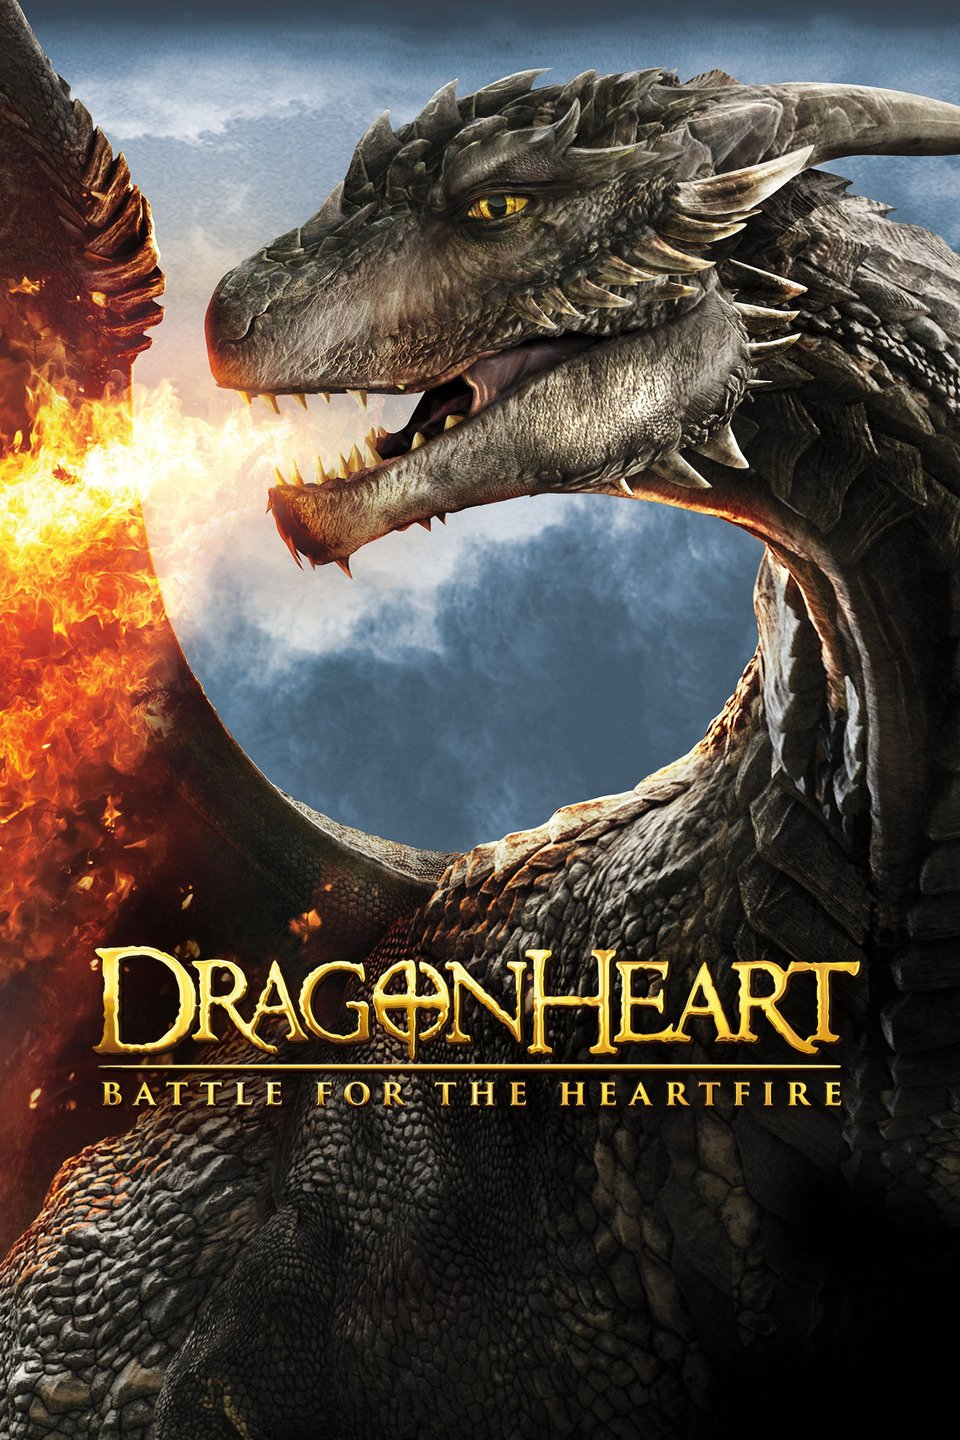 Dragonheart: Battle for the Heartfire-Dragonheart: Battle for the Heartfire